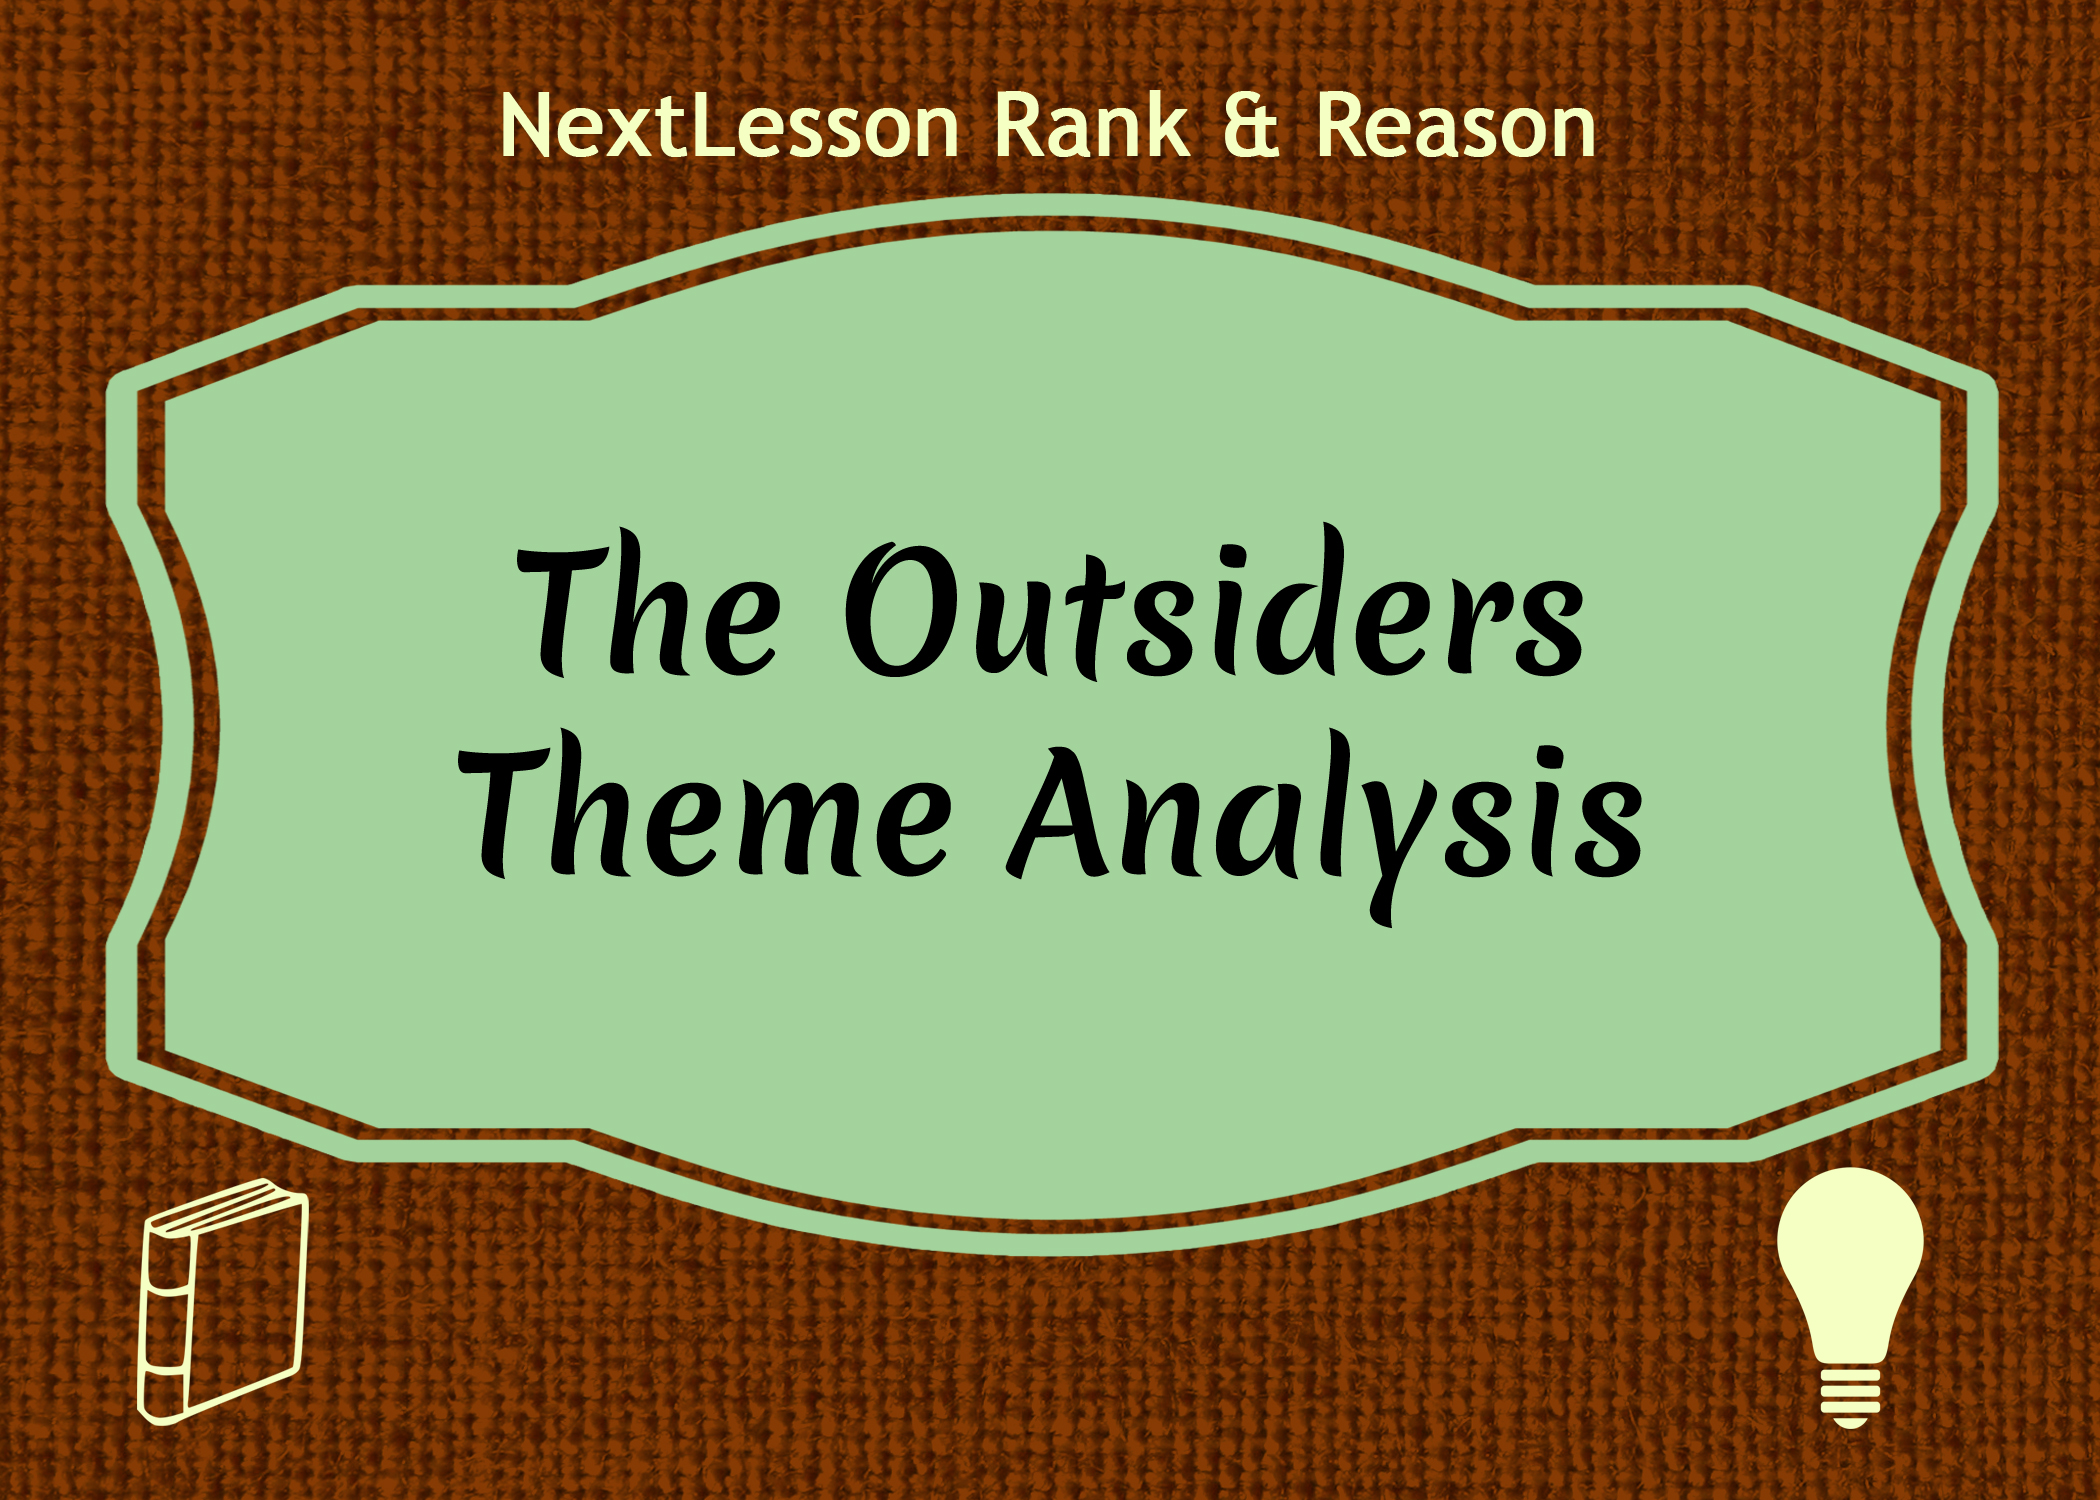 essay on the outsiders themes In 'the outsiders' by se hinton, the major theme surrounds the conflict between  the social classes, but there are other underlying themes as.